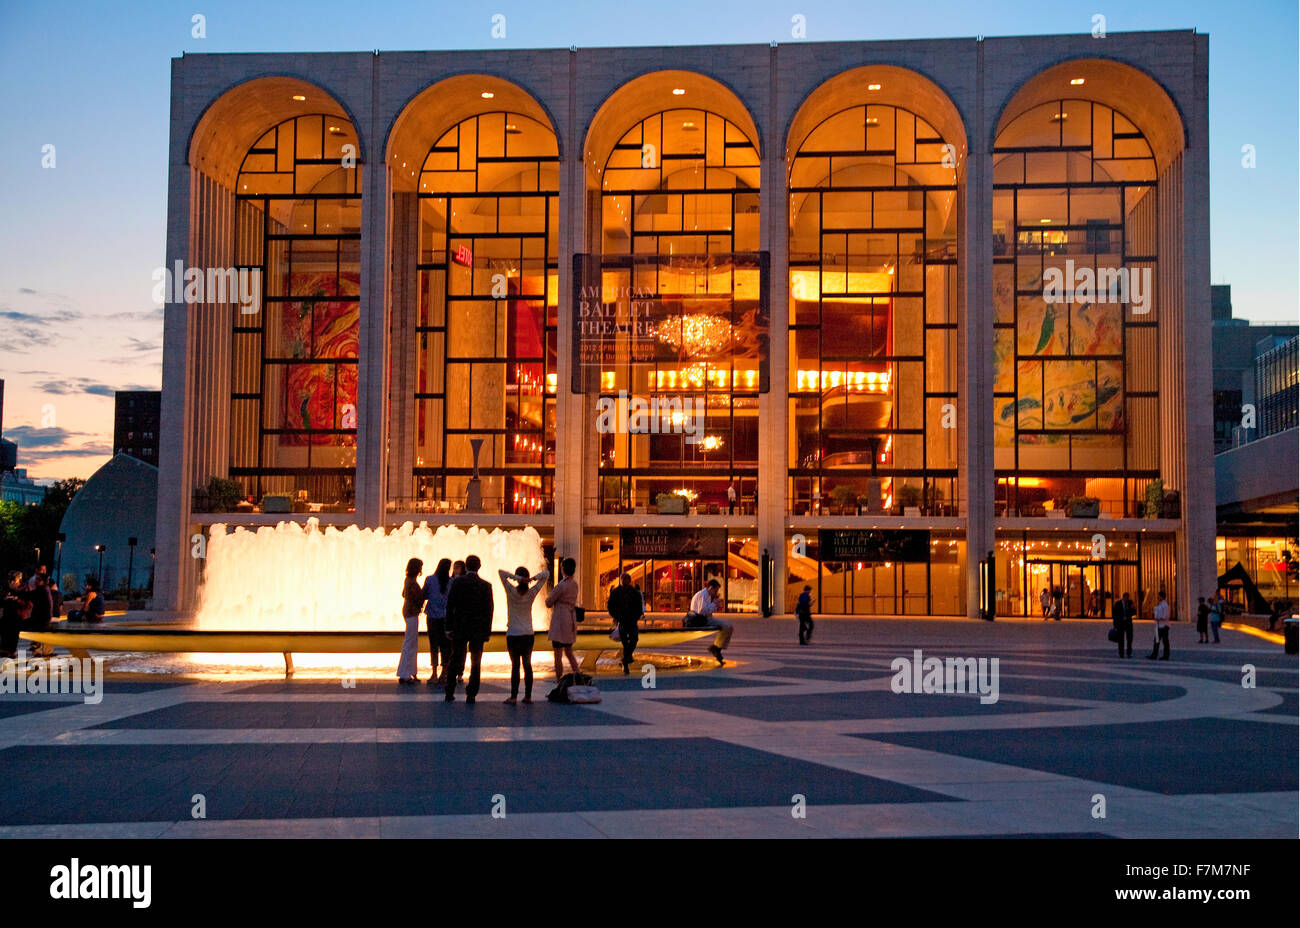 Lincoln Center at dusk, with crowds in front of water fountains, New York, New York - Stock Image